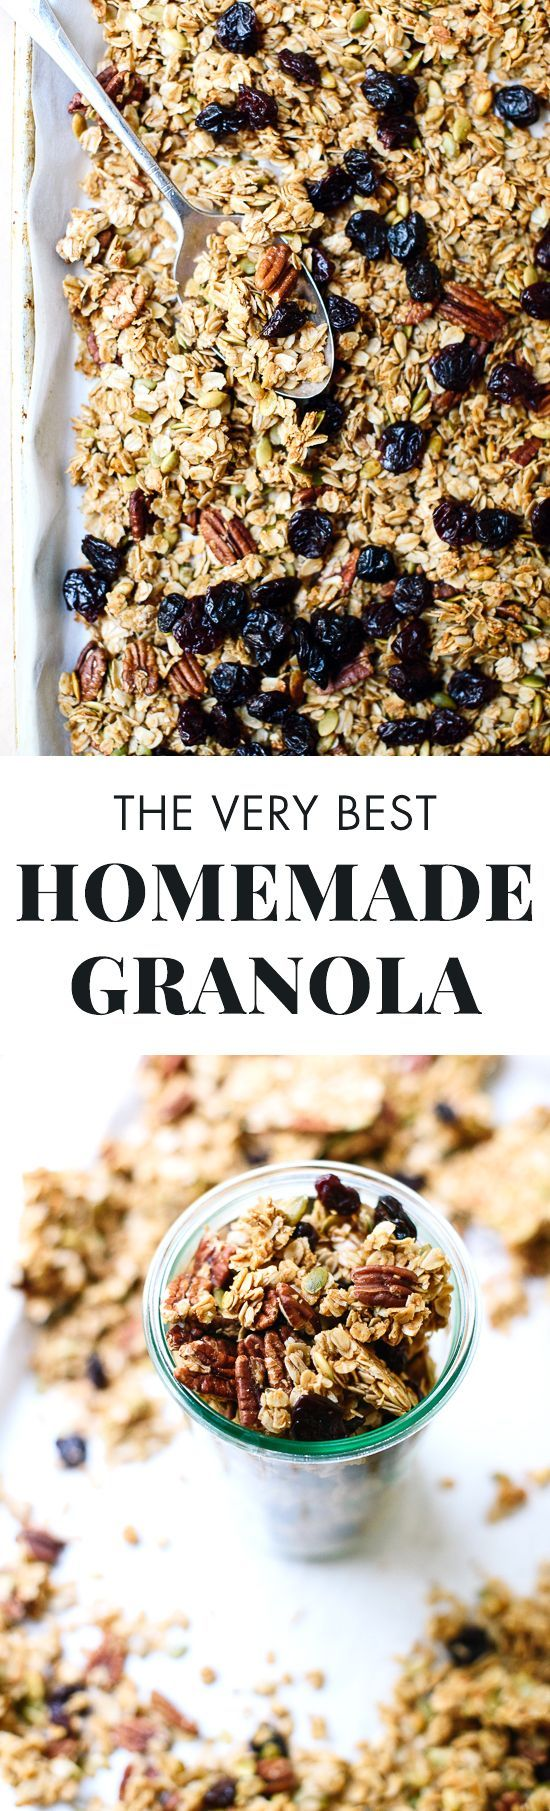 This healthy granola recipe is SO delicious! Find the recipe, plus tips on making it your own, at http://cookieandkate.com